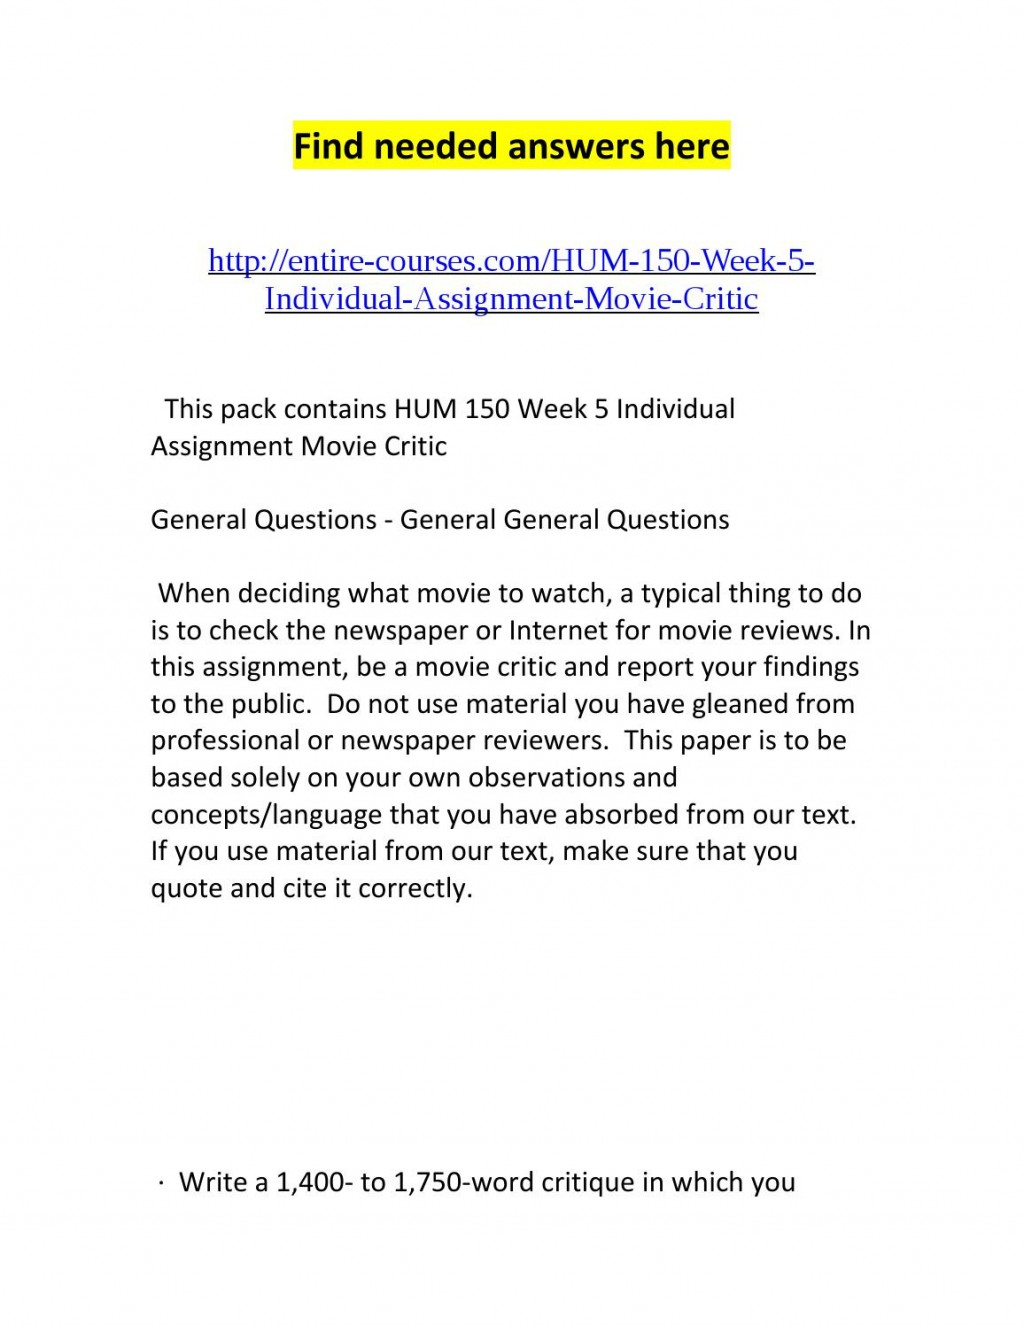 002 Cyber Terrorism Essay Research Paper Page 1 Imposing Large